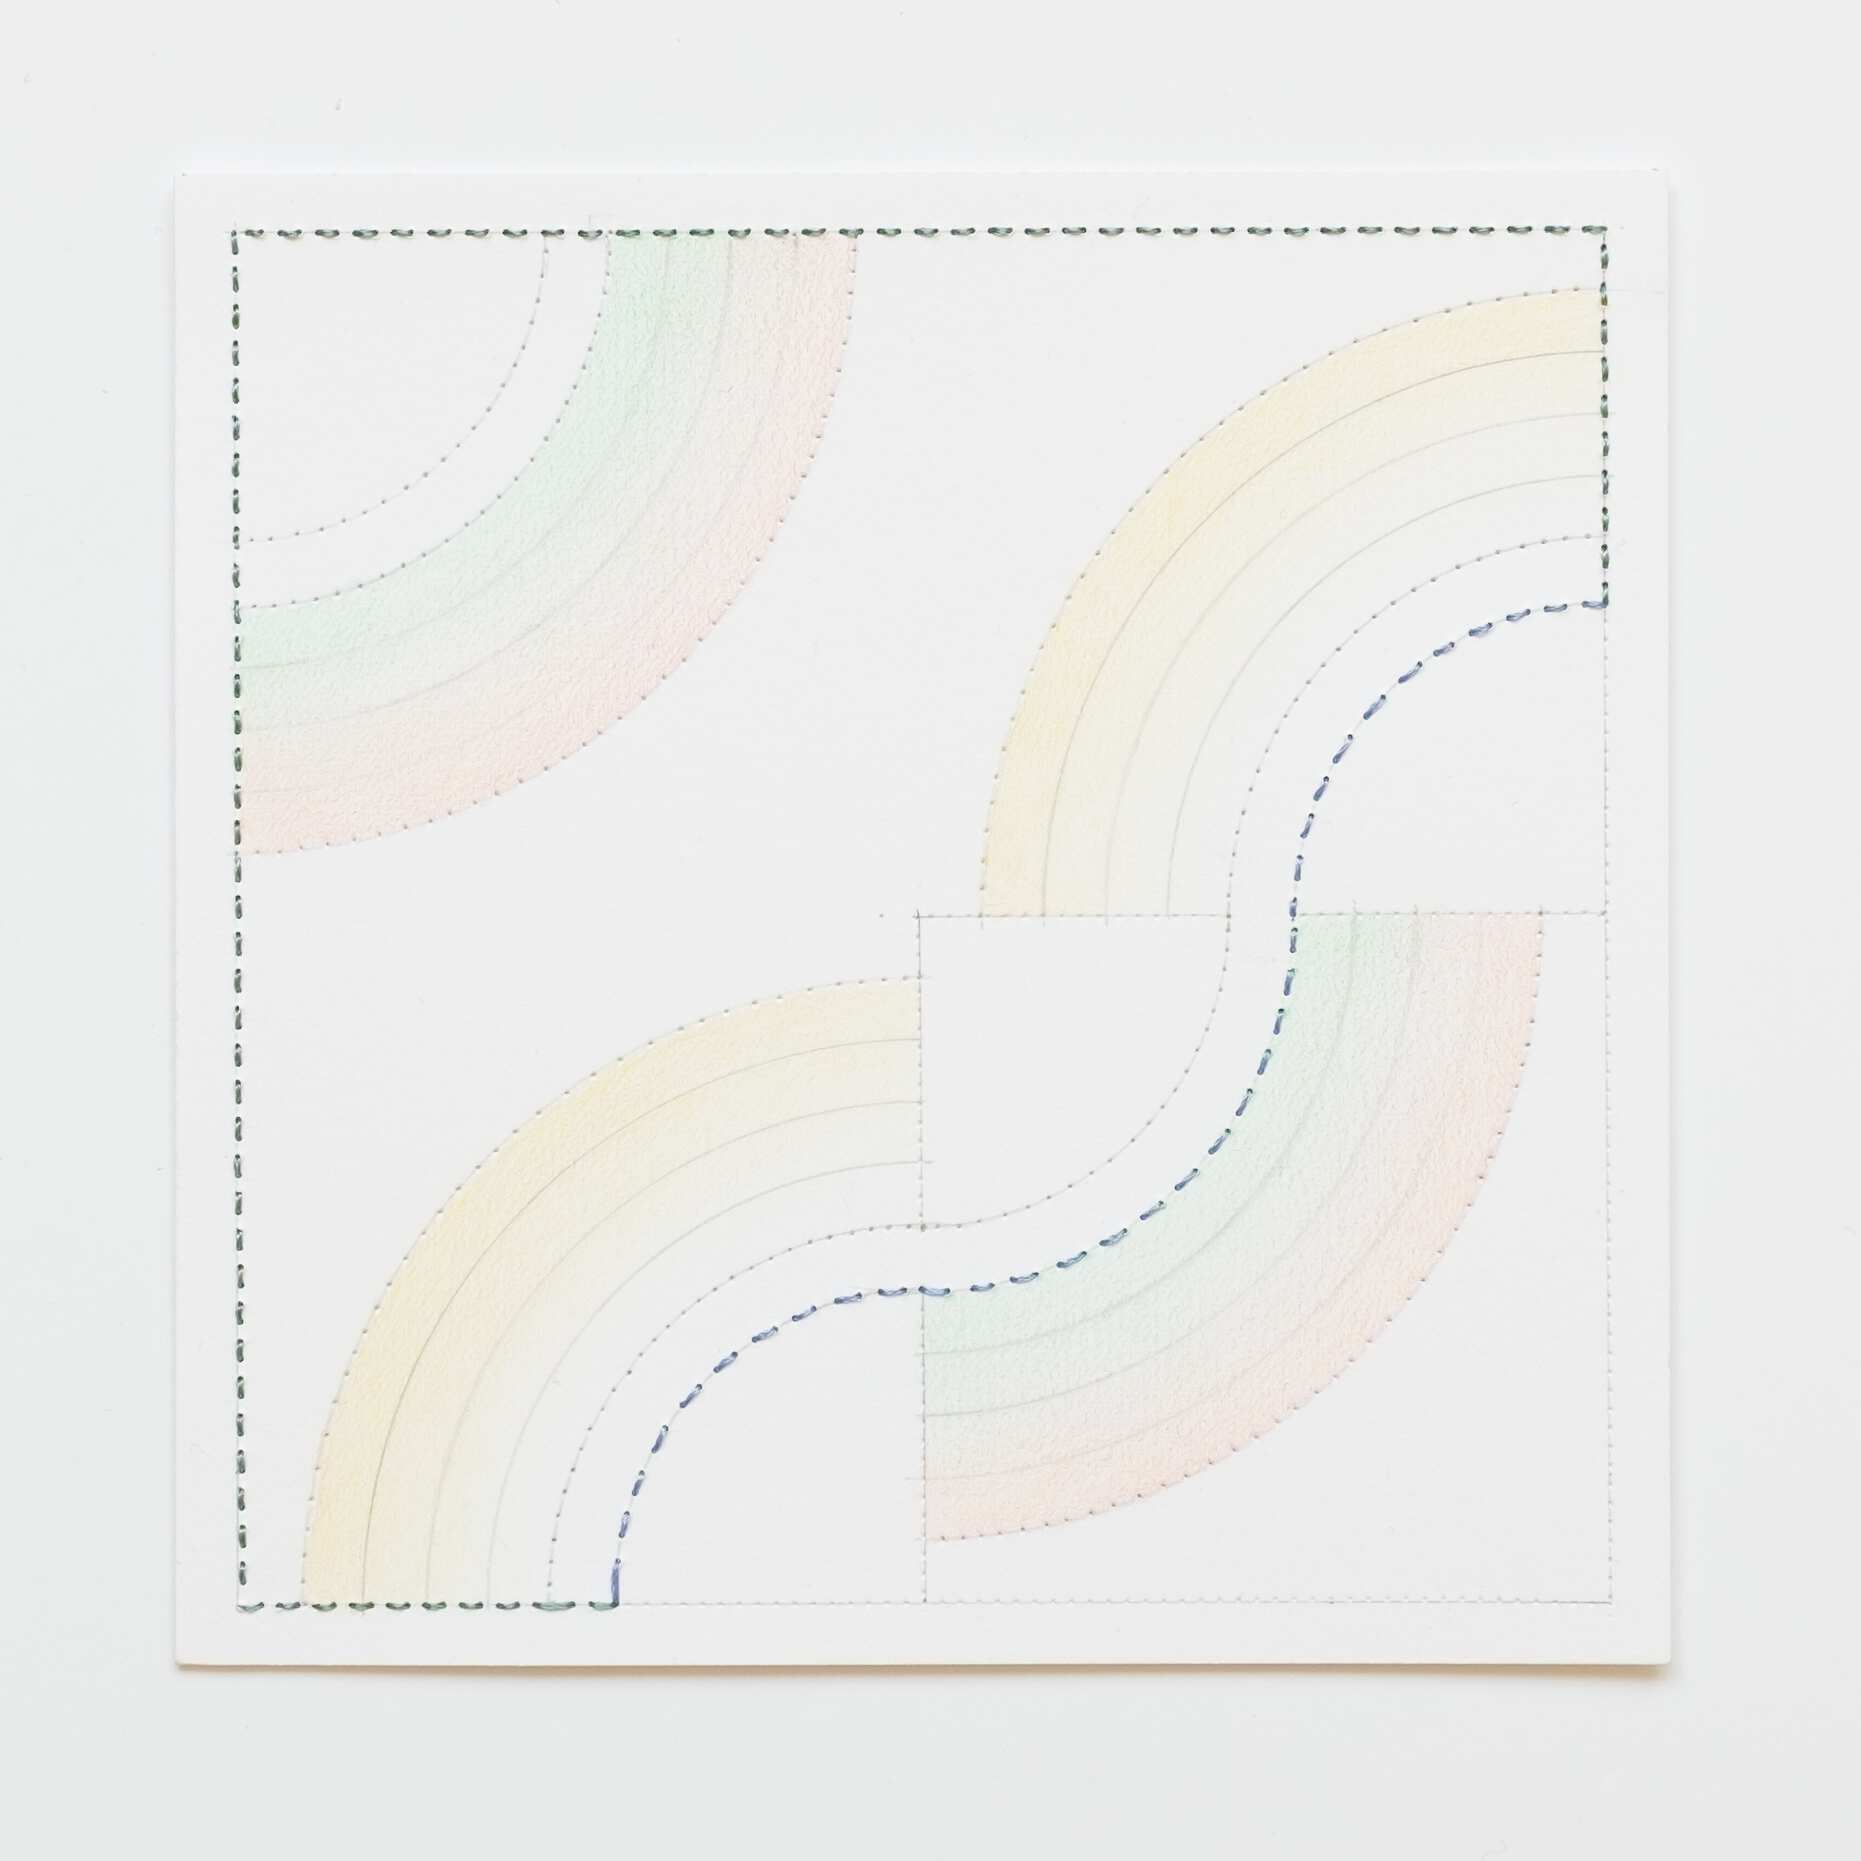 Quilted Composition [white // rainbows YGO], Hand-embroidered silk thread, pencil, and coloured pencil on paper, 2019